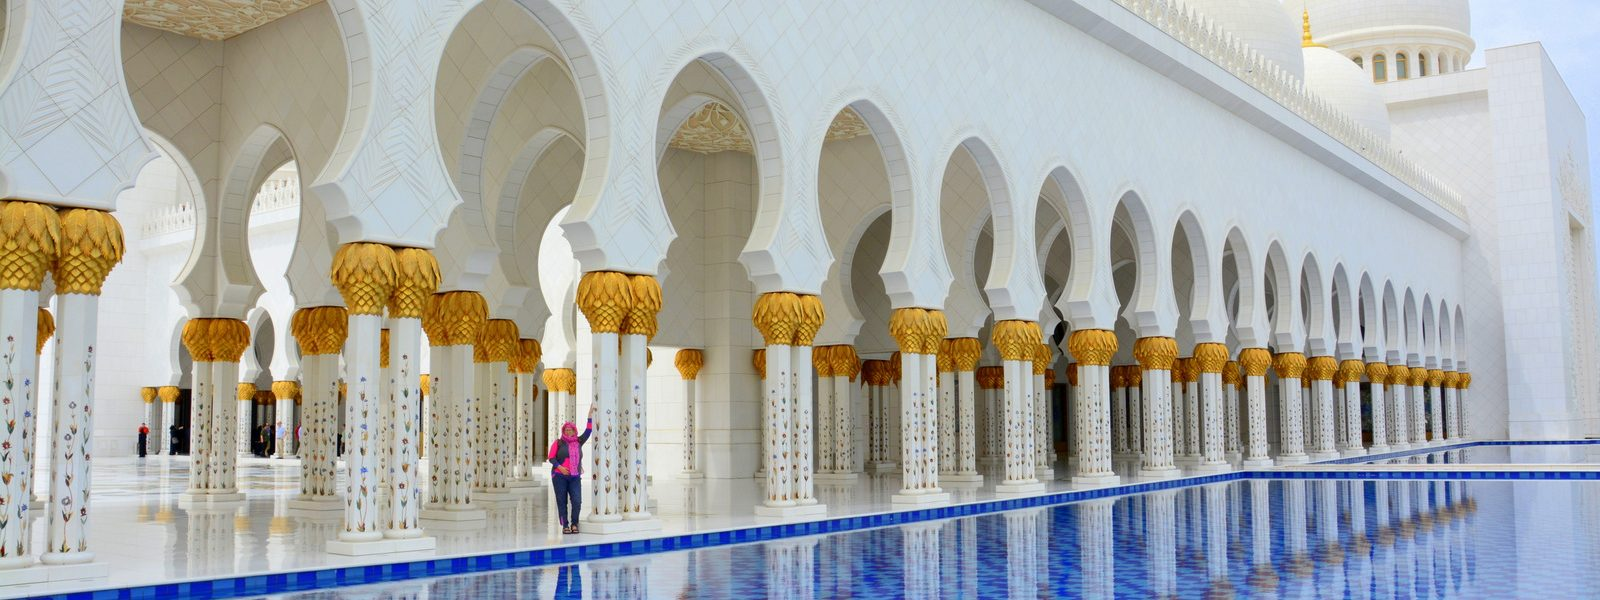 Abu Dhabi and Sheik Zayed Grand Mosque